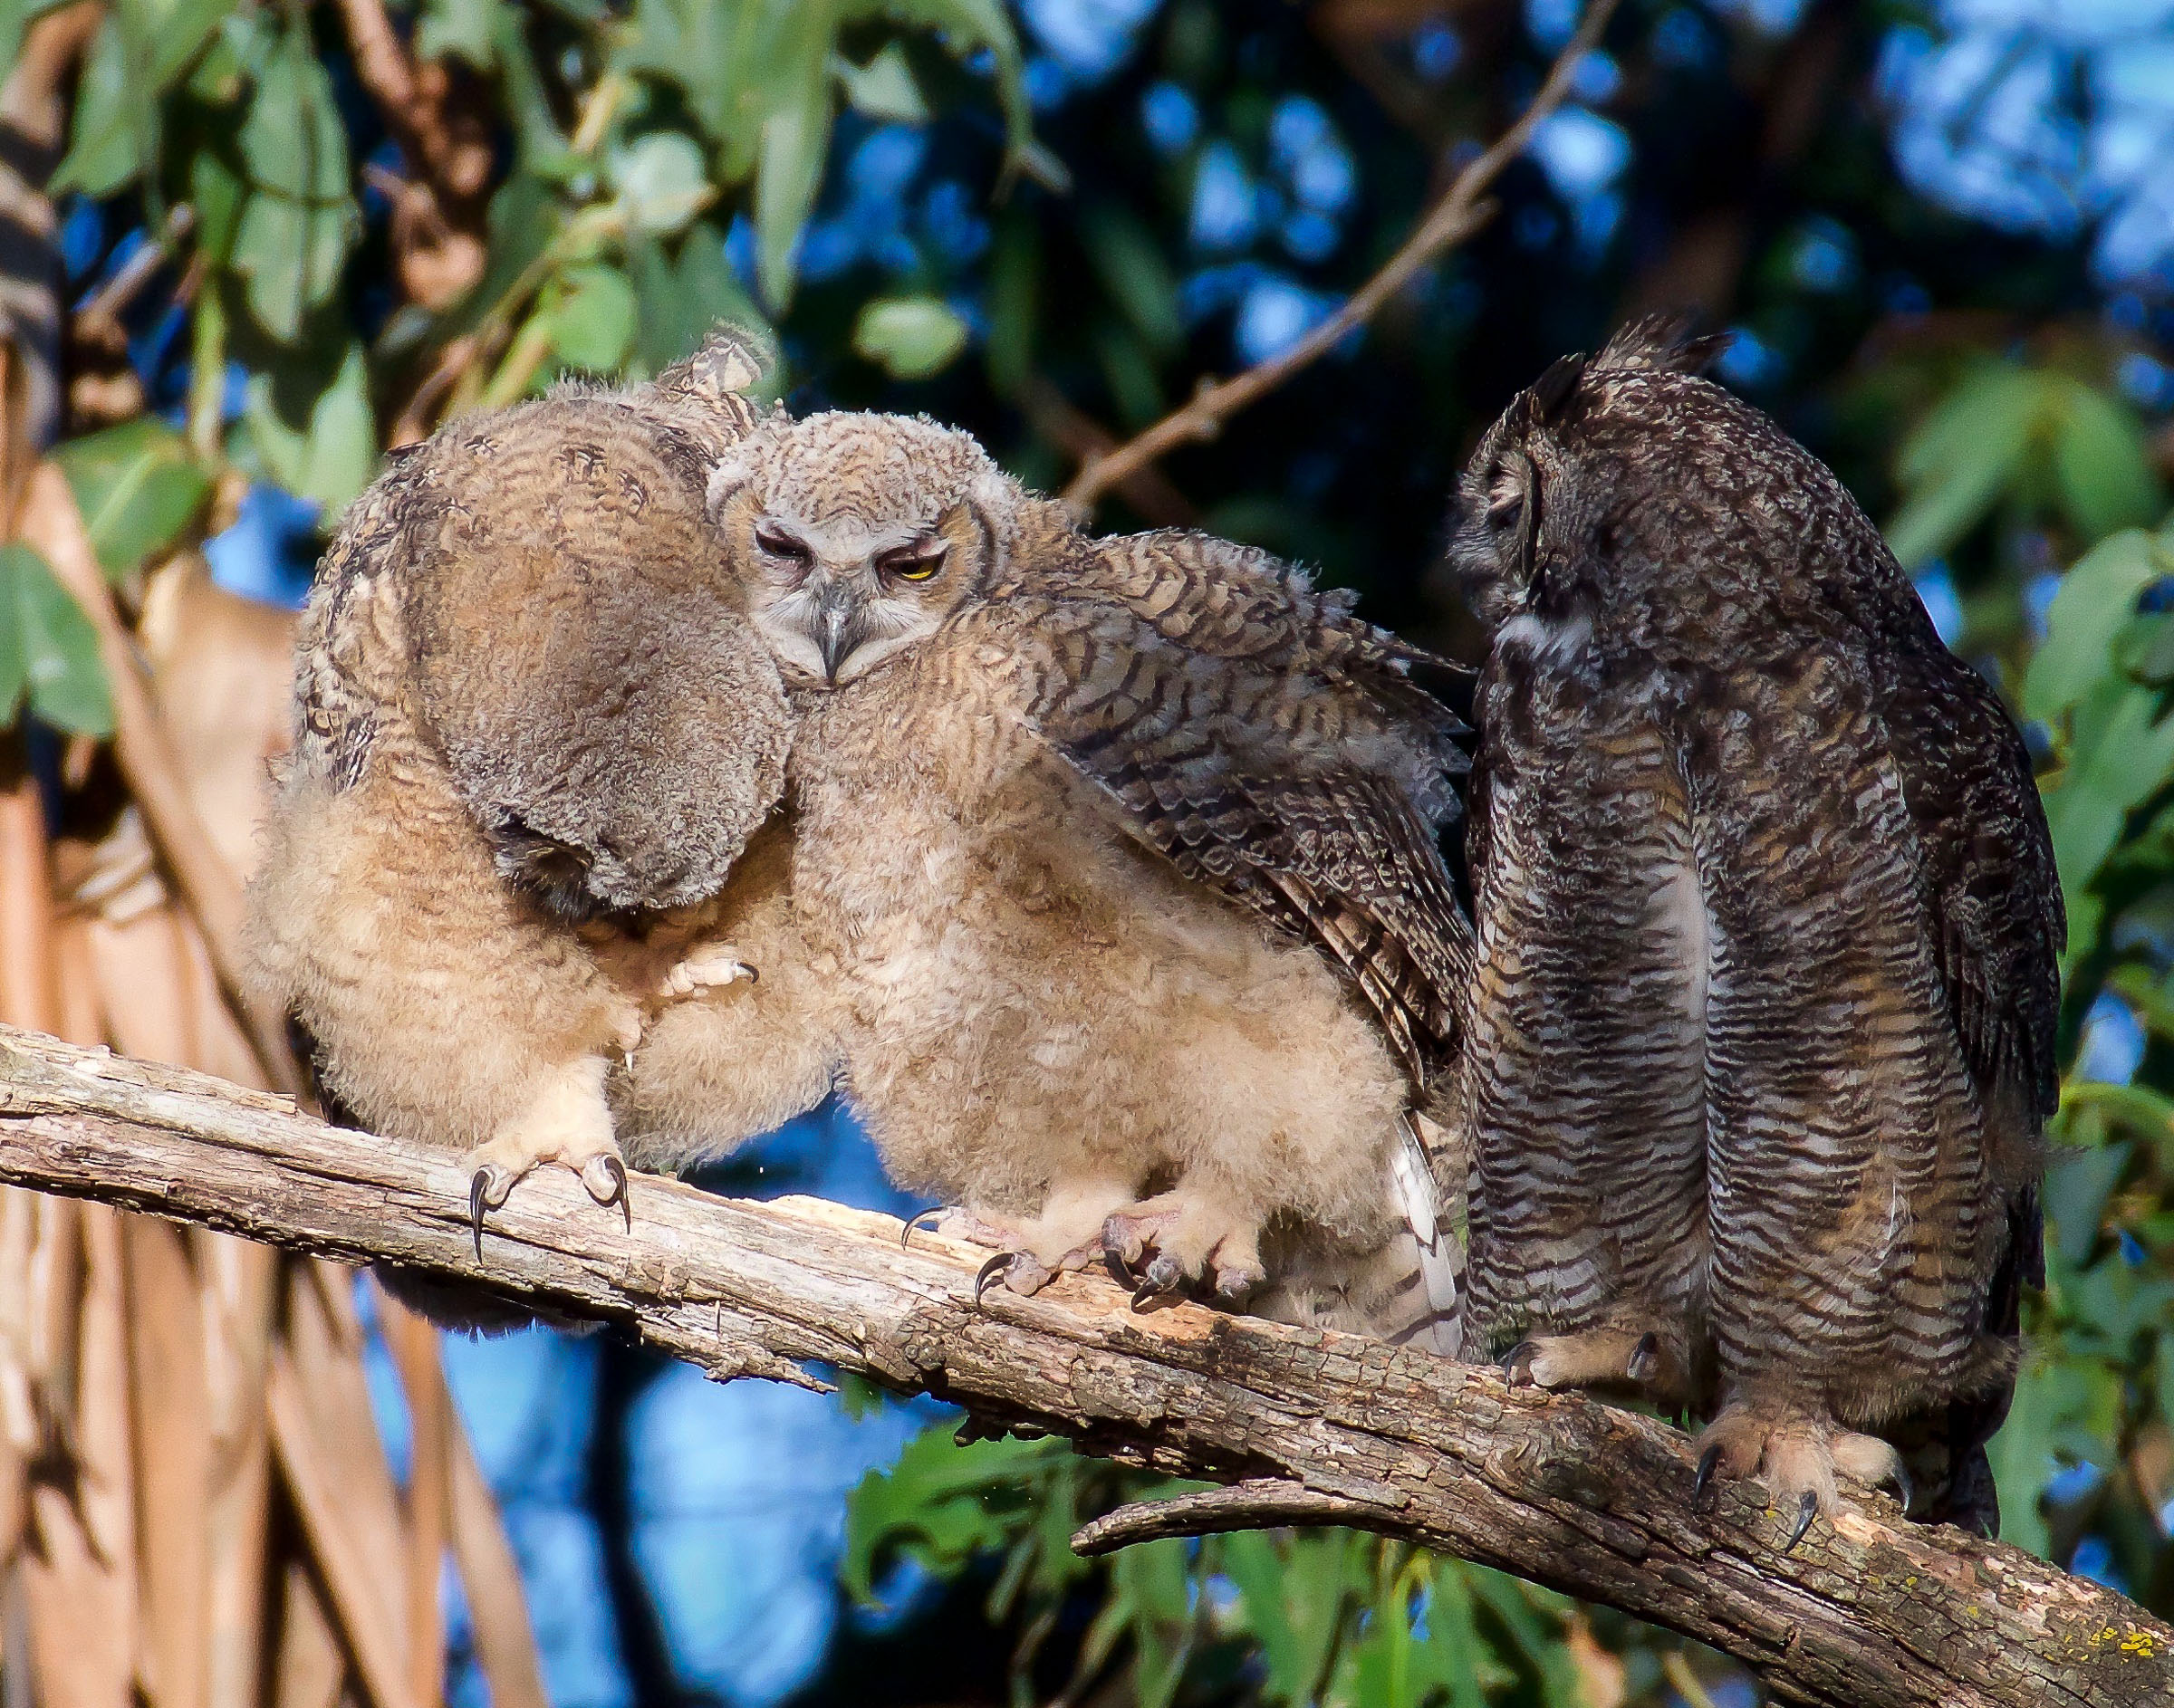 mother-great-horned-owl-grooming-owlets-13.jpg